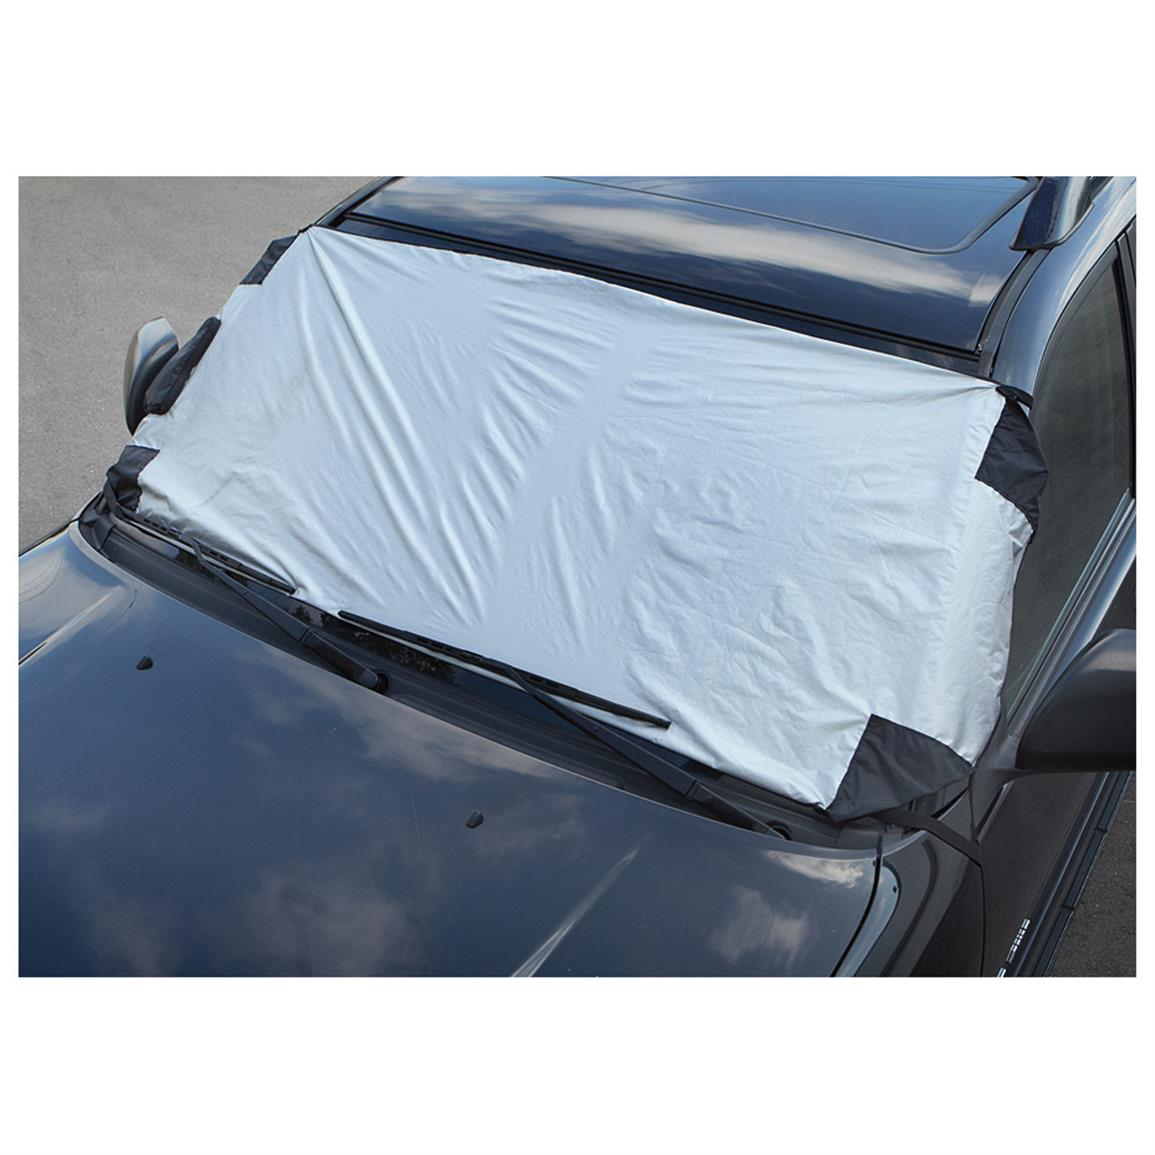 Classic Accessories Snow and Ice Windshield Cover